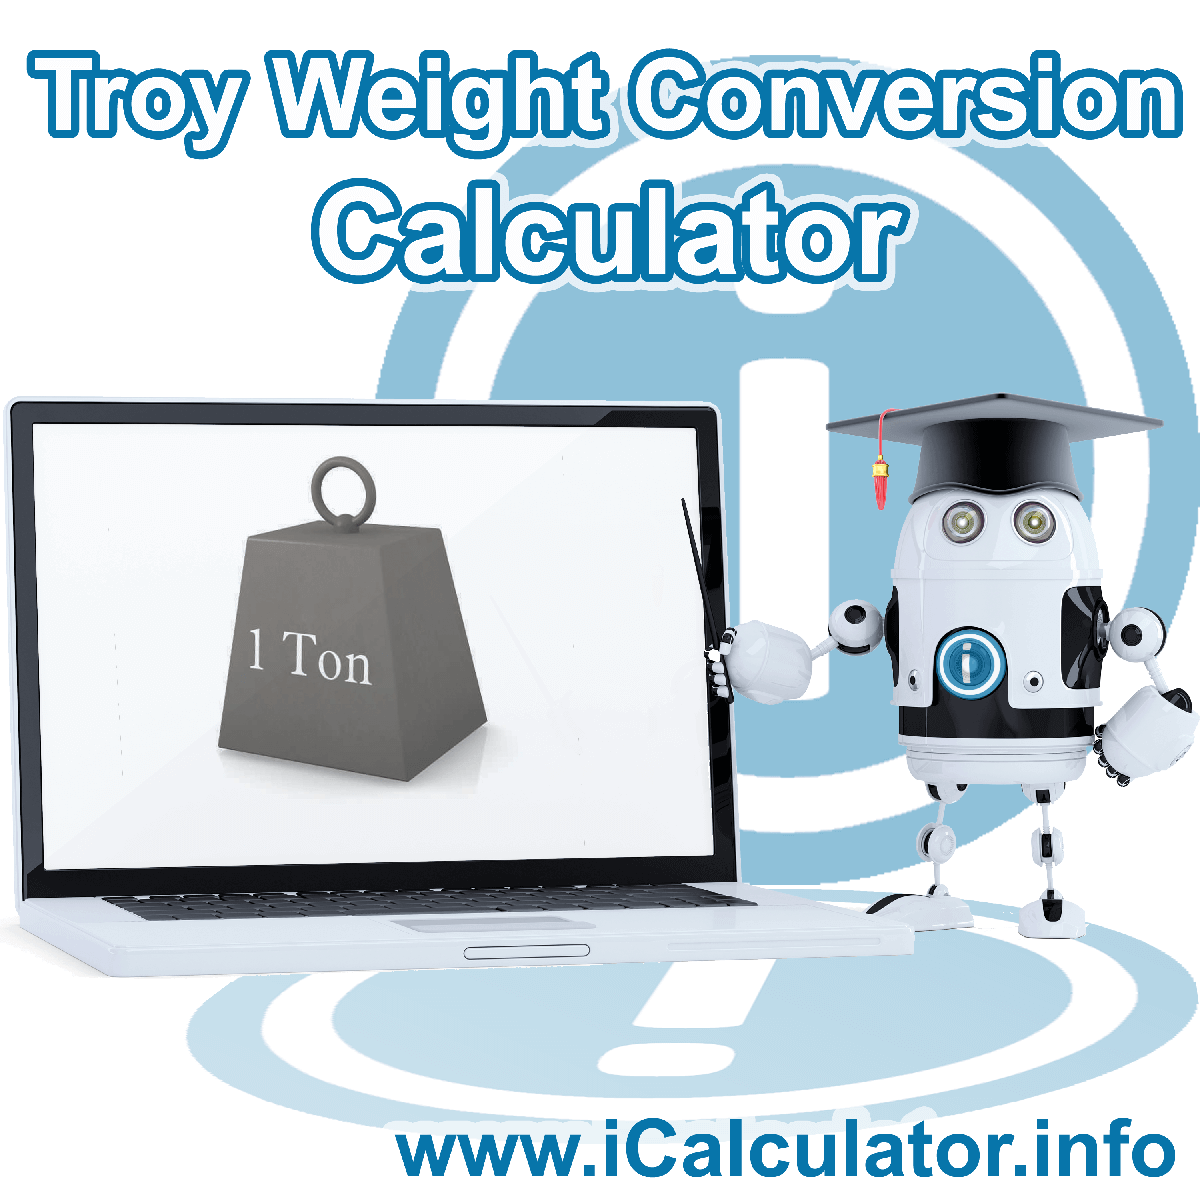 Troy Weight Conversion Calculator. This image shows Troy Weight Conversion formula with associated calculations used by the Troy Weight Conversion Calculator